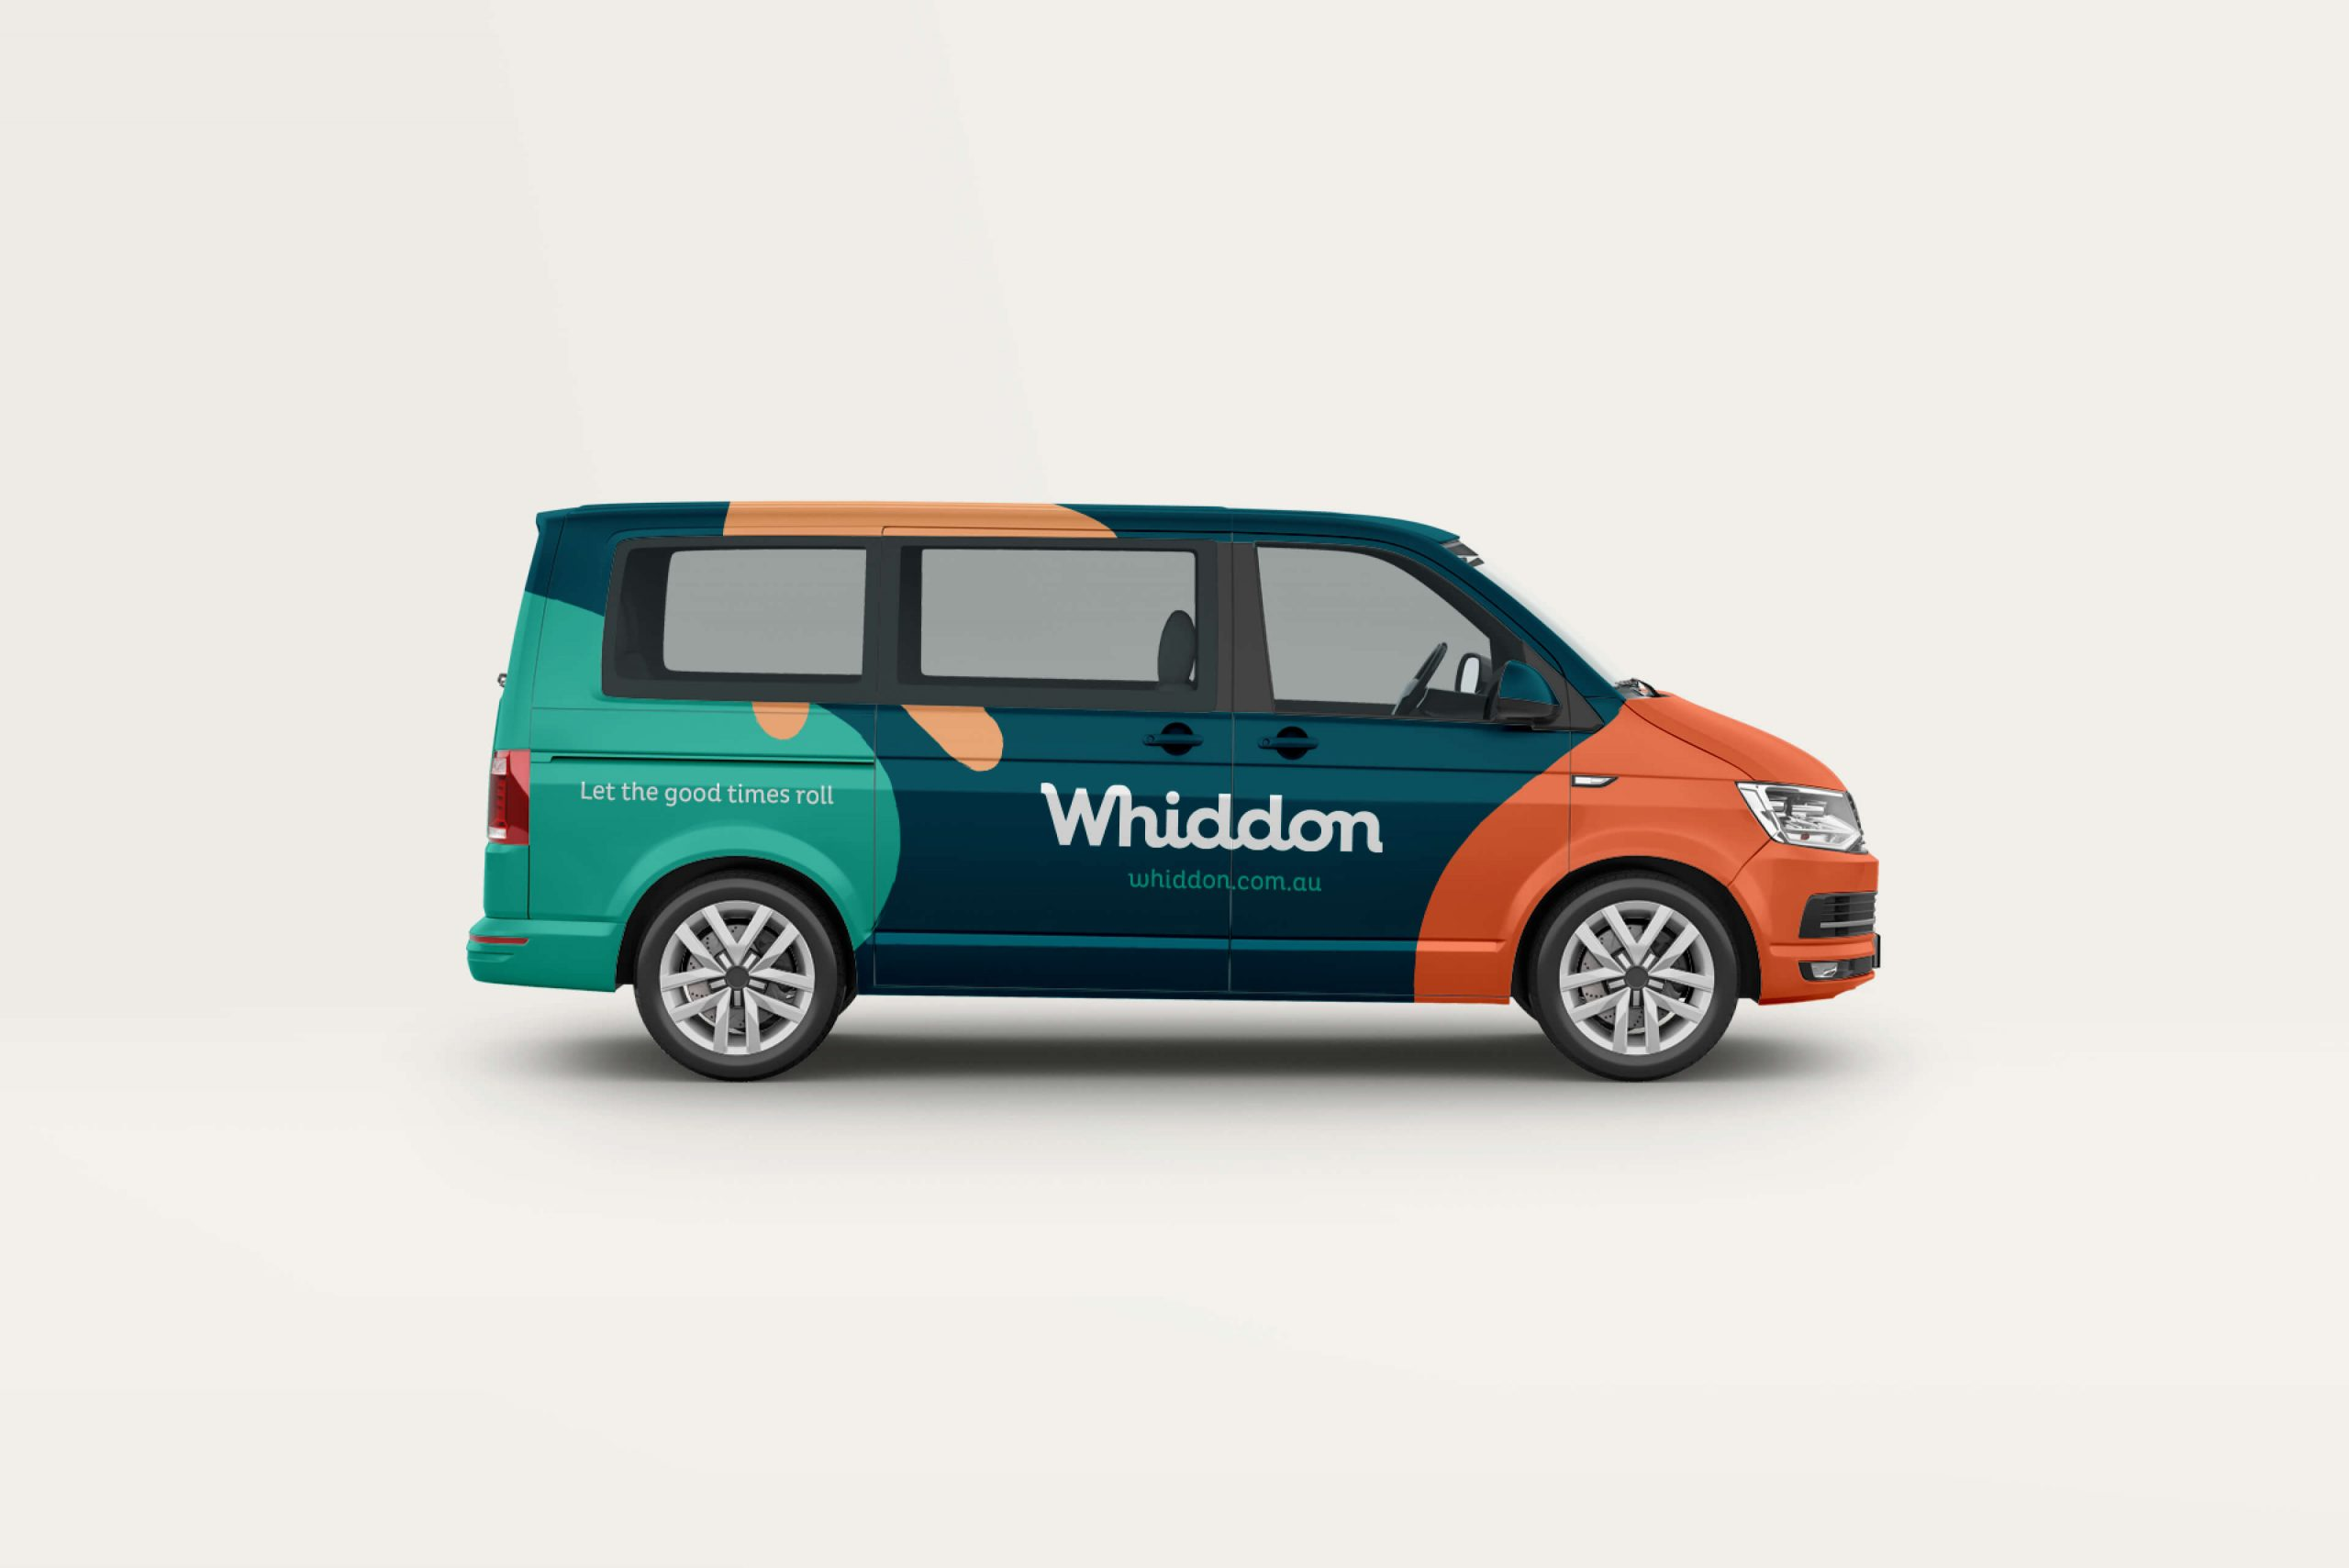 Whiddon Brand Refresh - branded vehicle livery for the transportation van